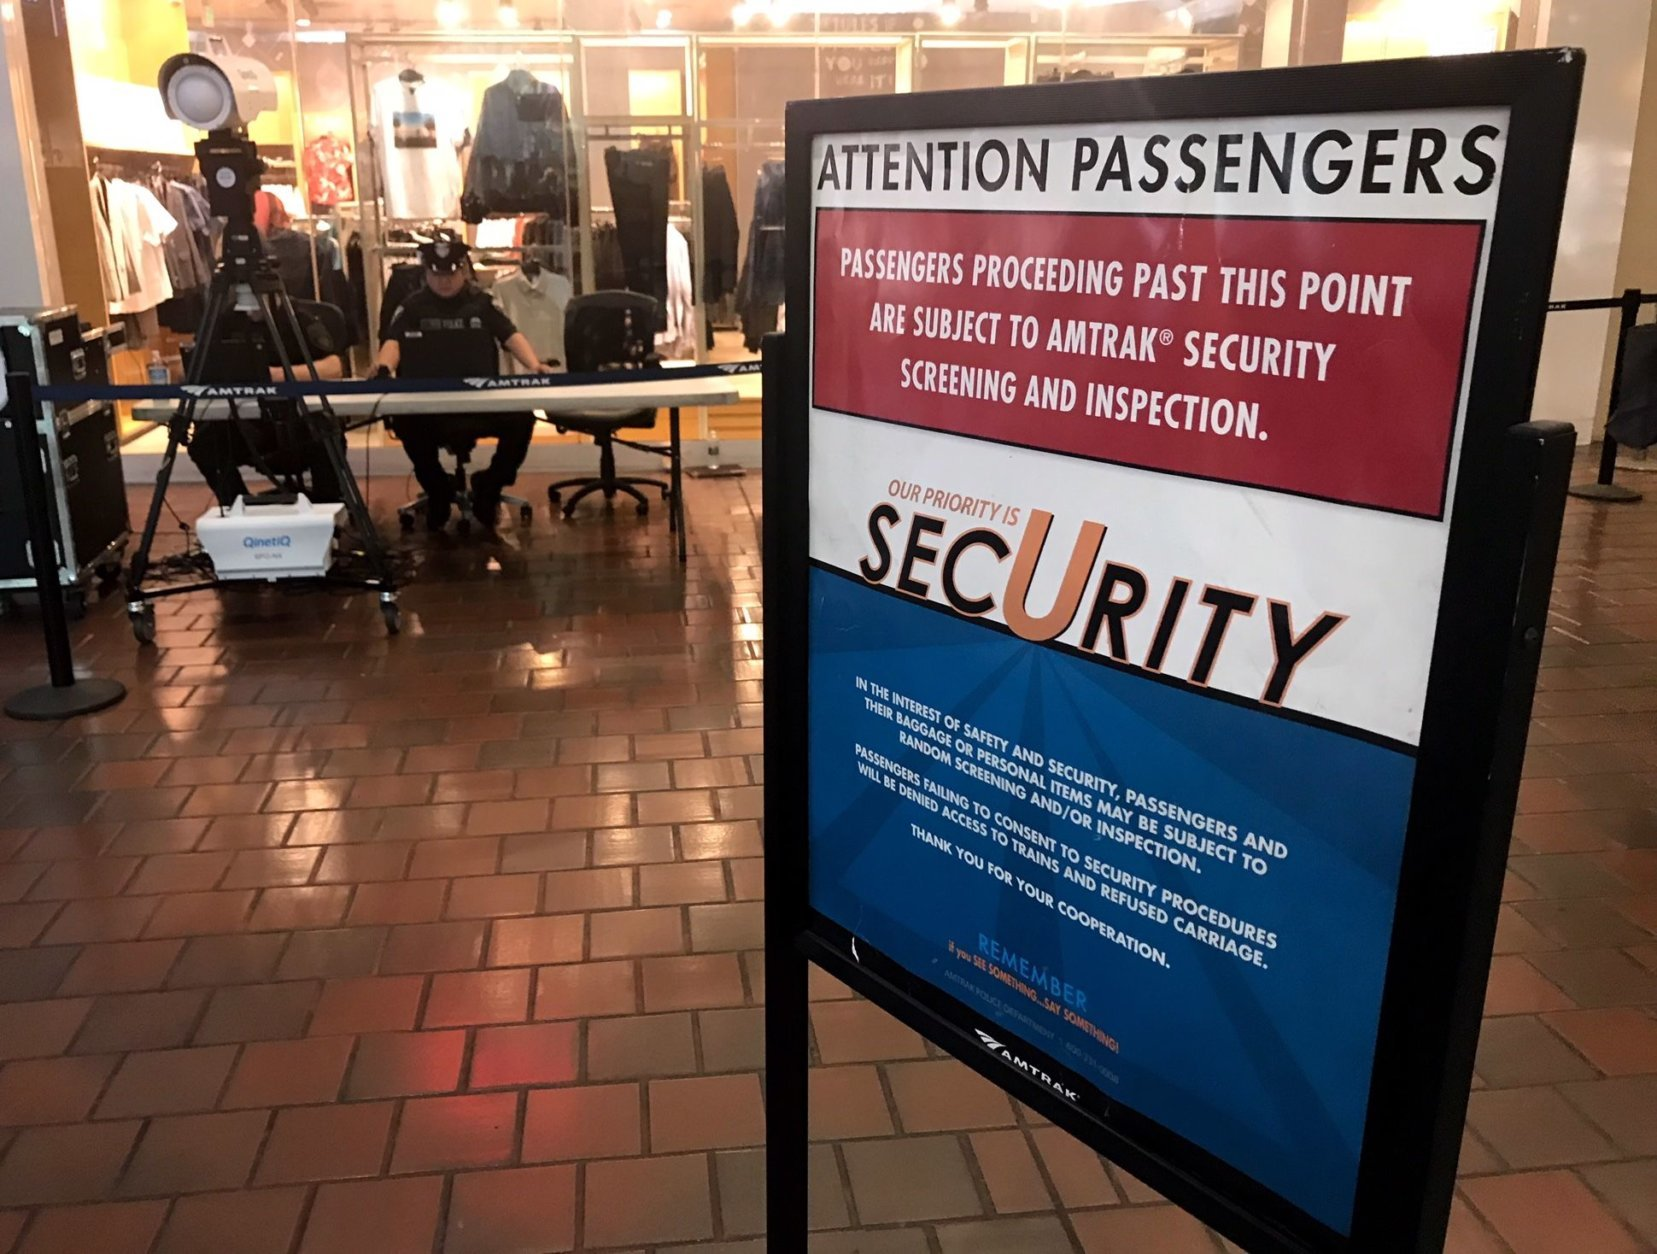 In a crowded corridor, passengers and shoppers walked by new portable screening equipment, which was being tested by Amtrak police, working with the Transportation Security Administration.(WTOP/Neal Augenstein)